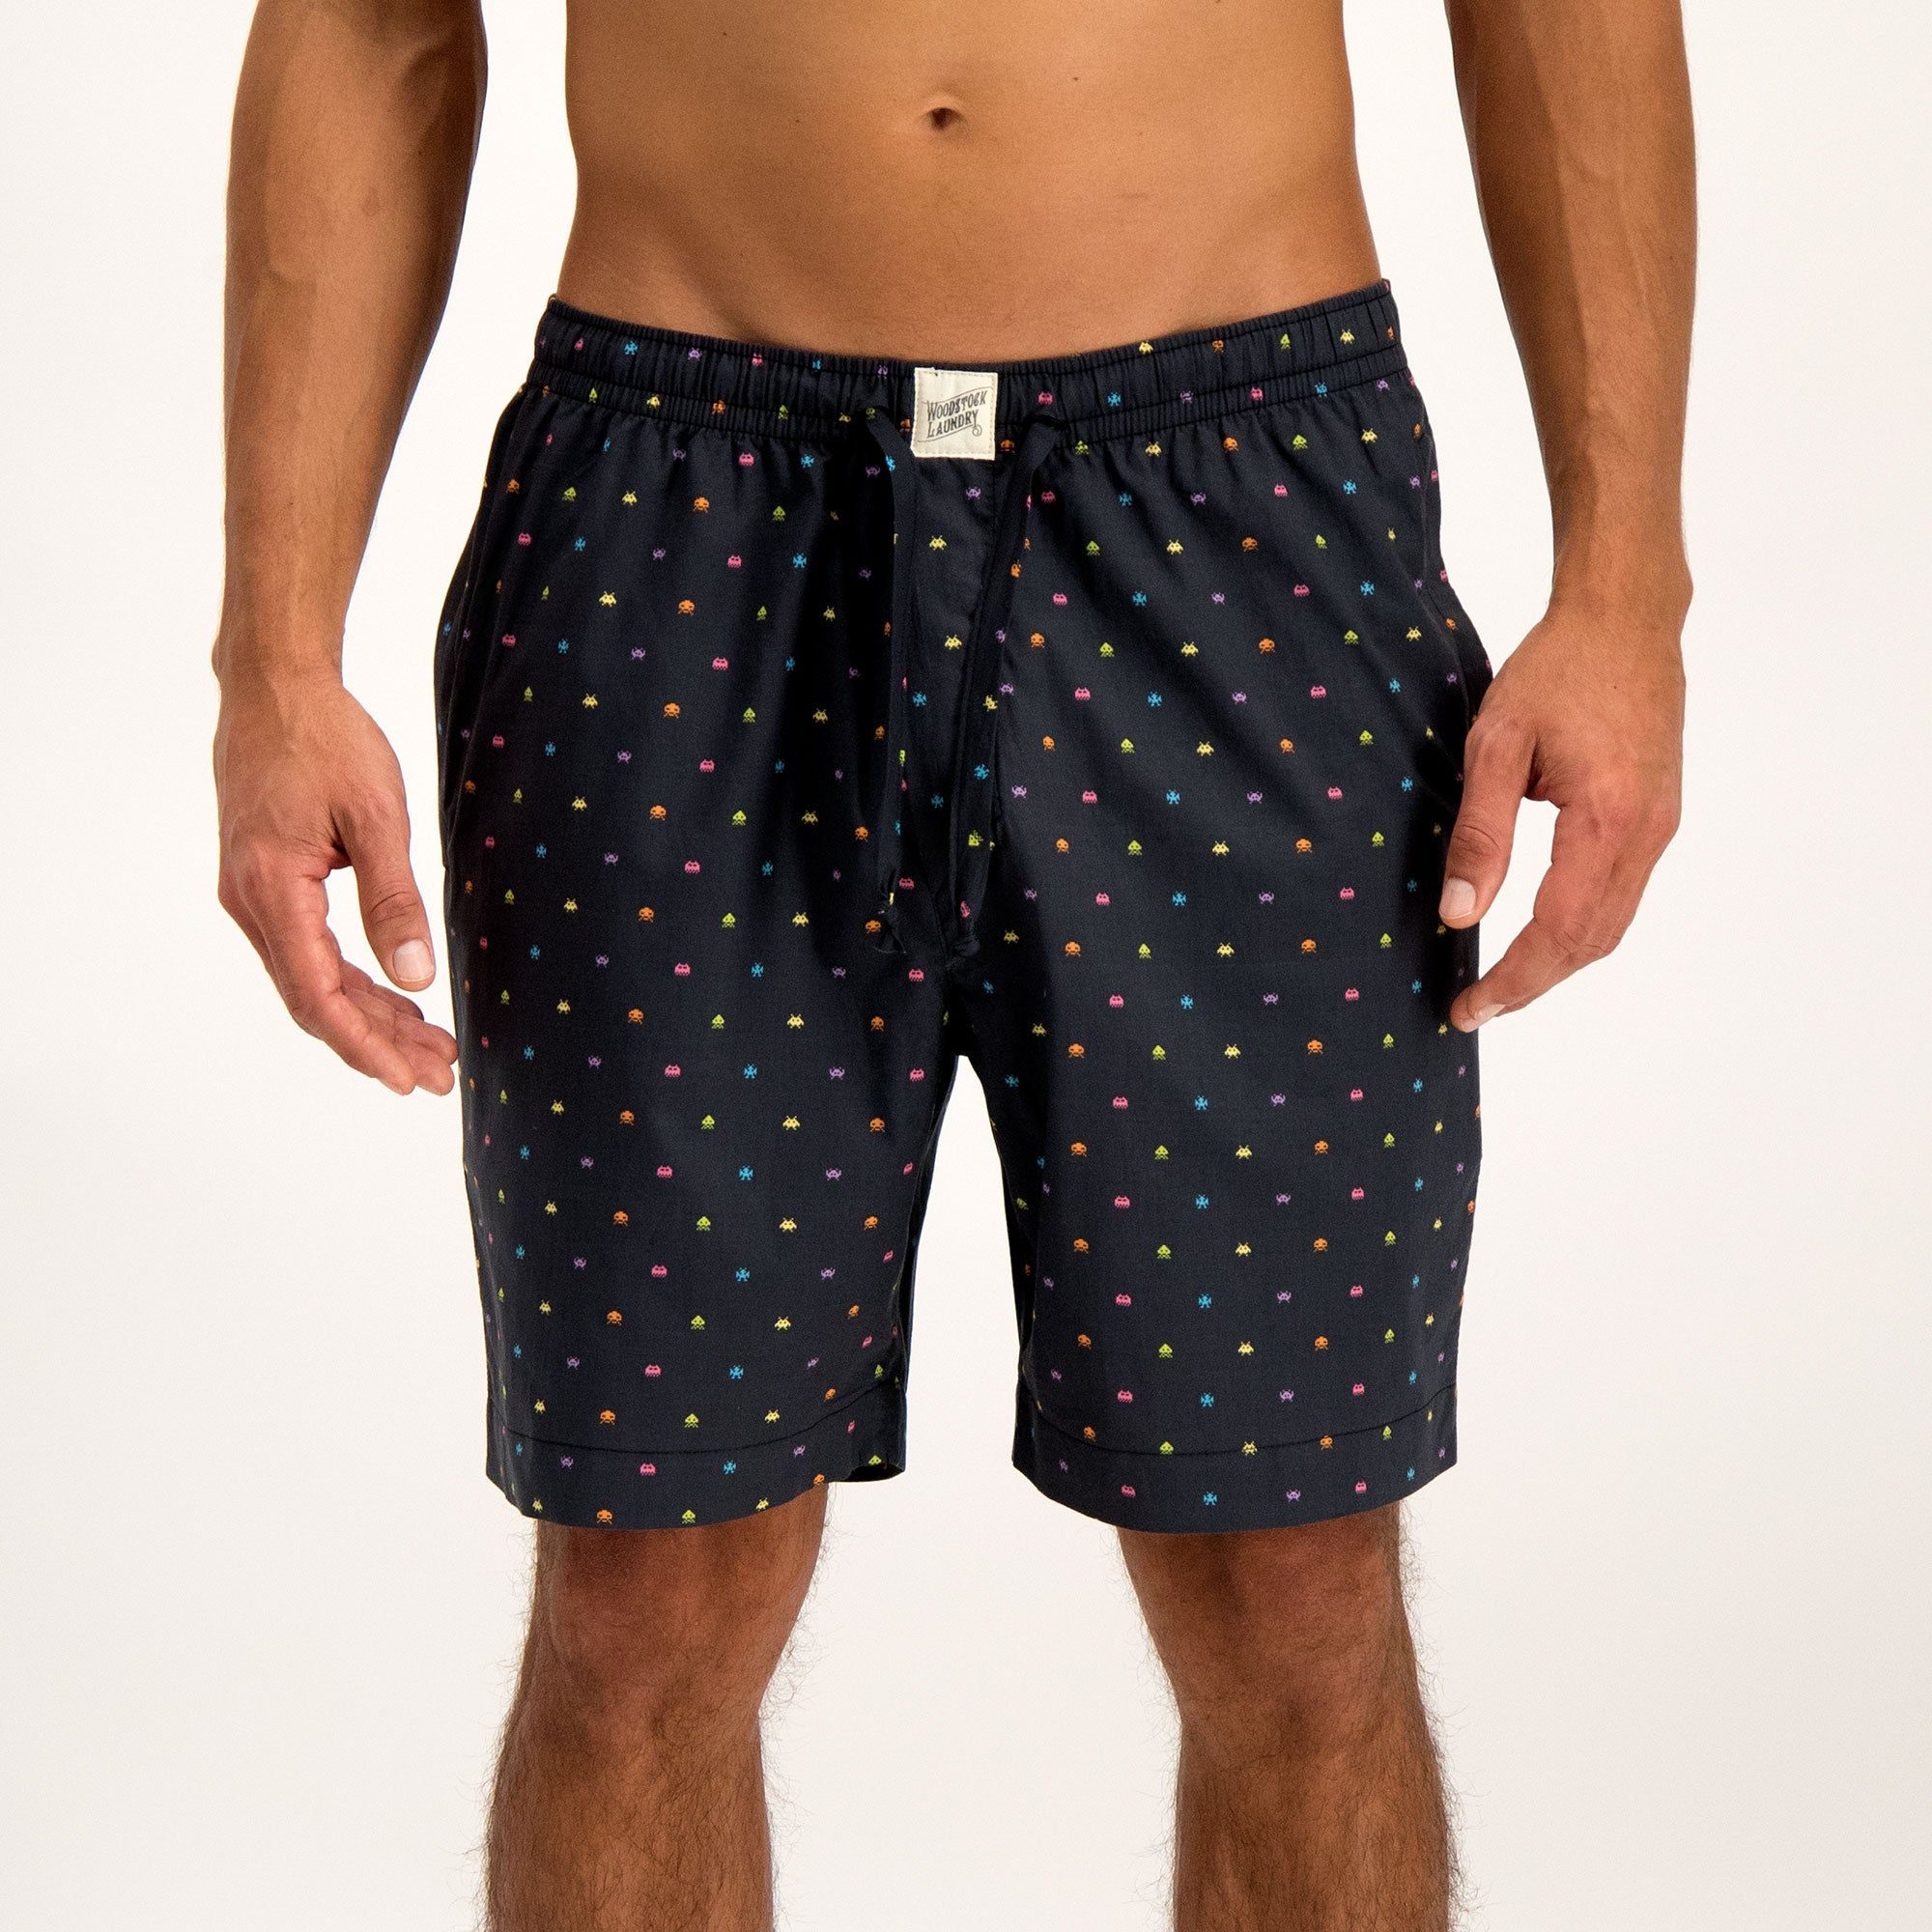 Mens Lounge Shorts Invaders Black - Woodstock Laundry